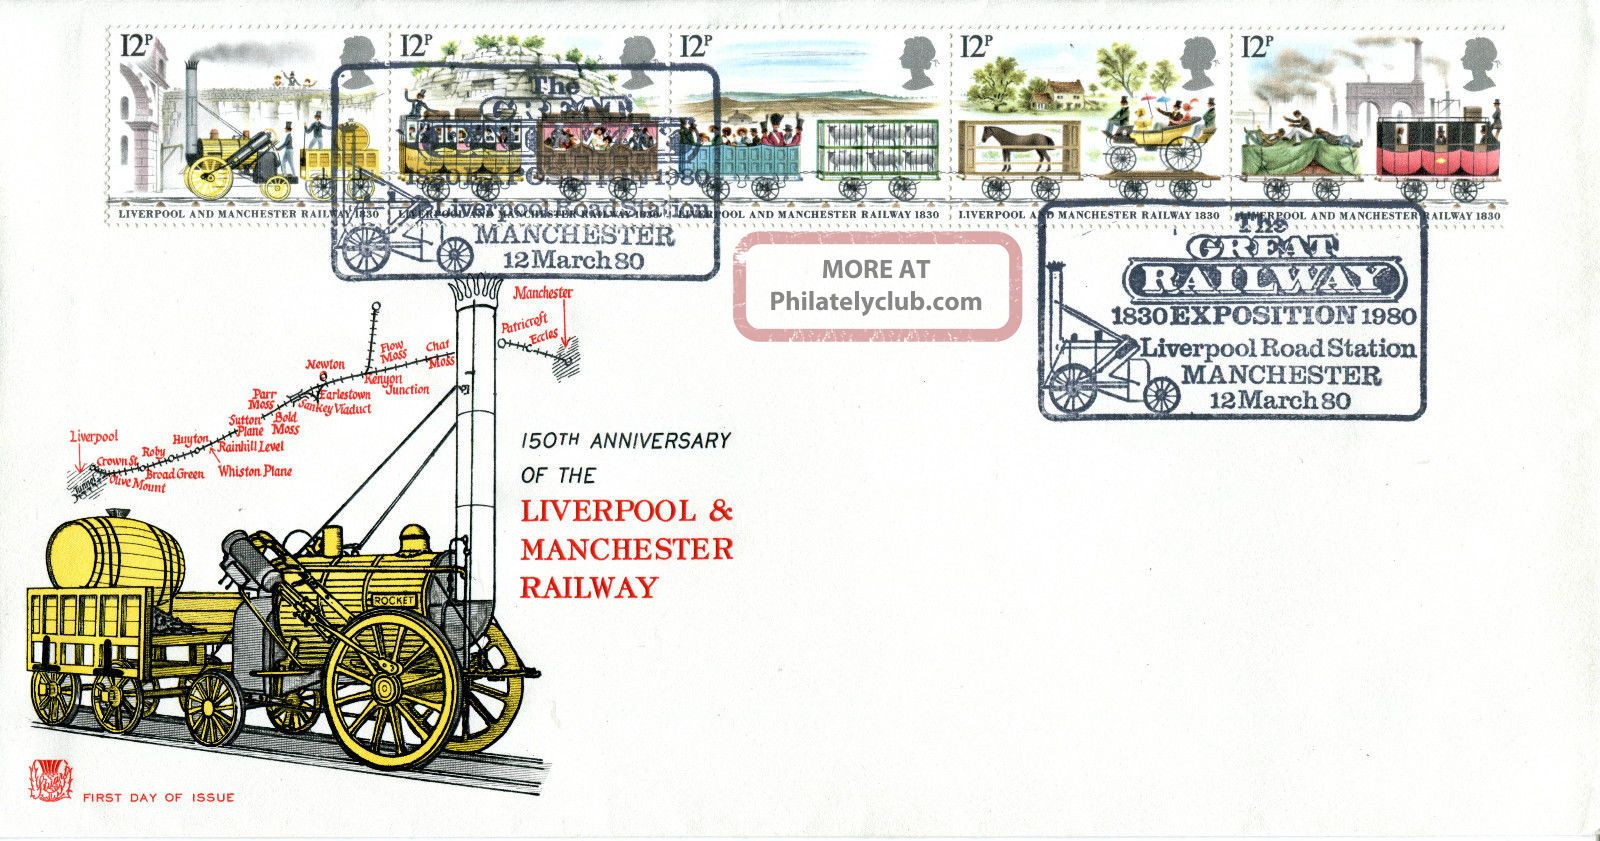 12 March 1980 Liverpool & Manchester Railway Stuart Fdc Exposition Shs Transportation photo